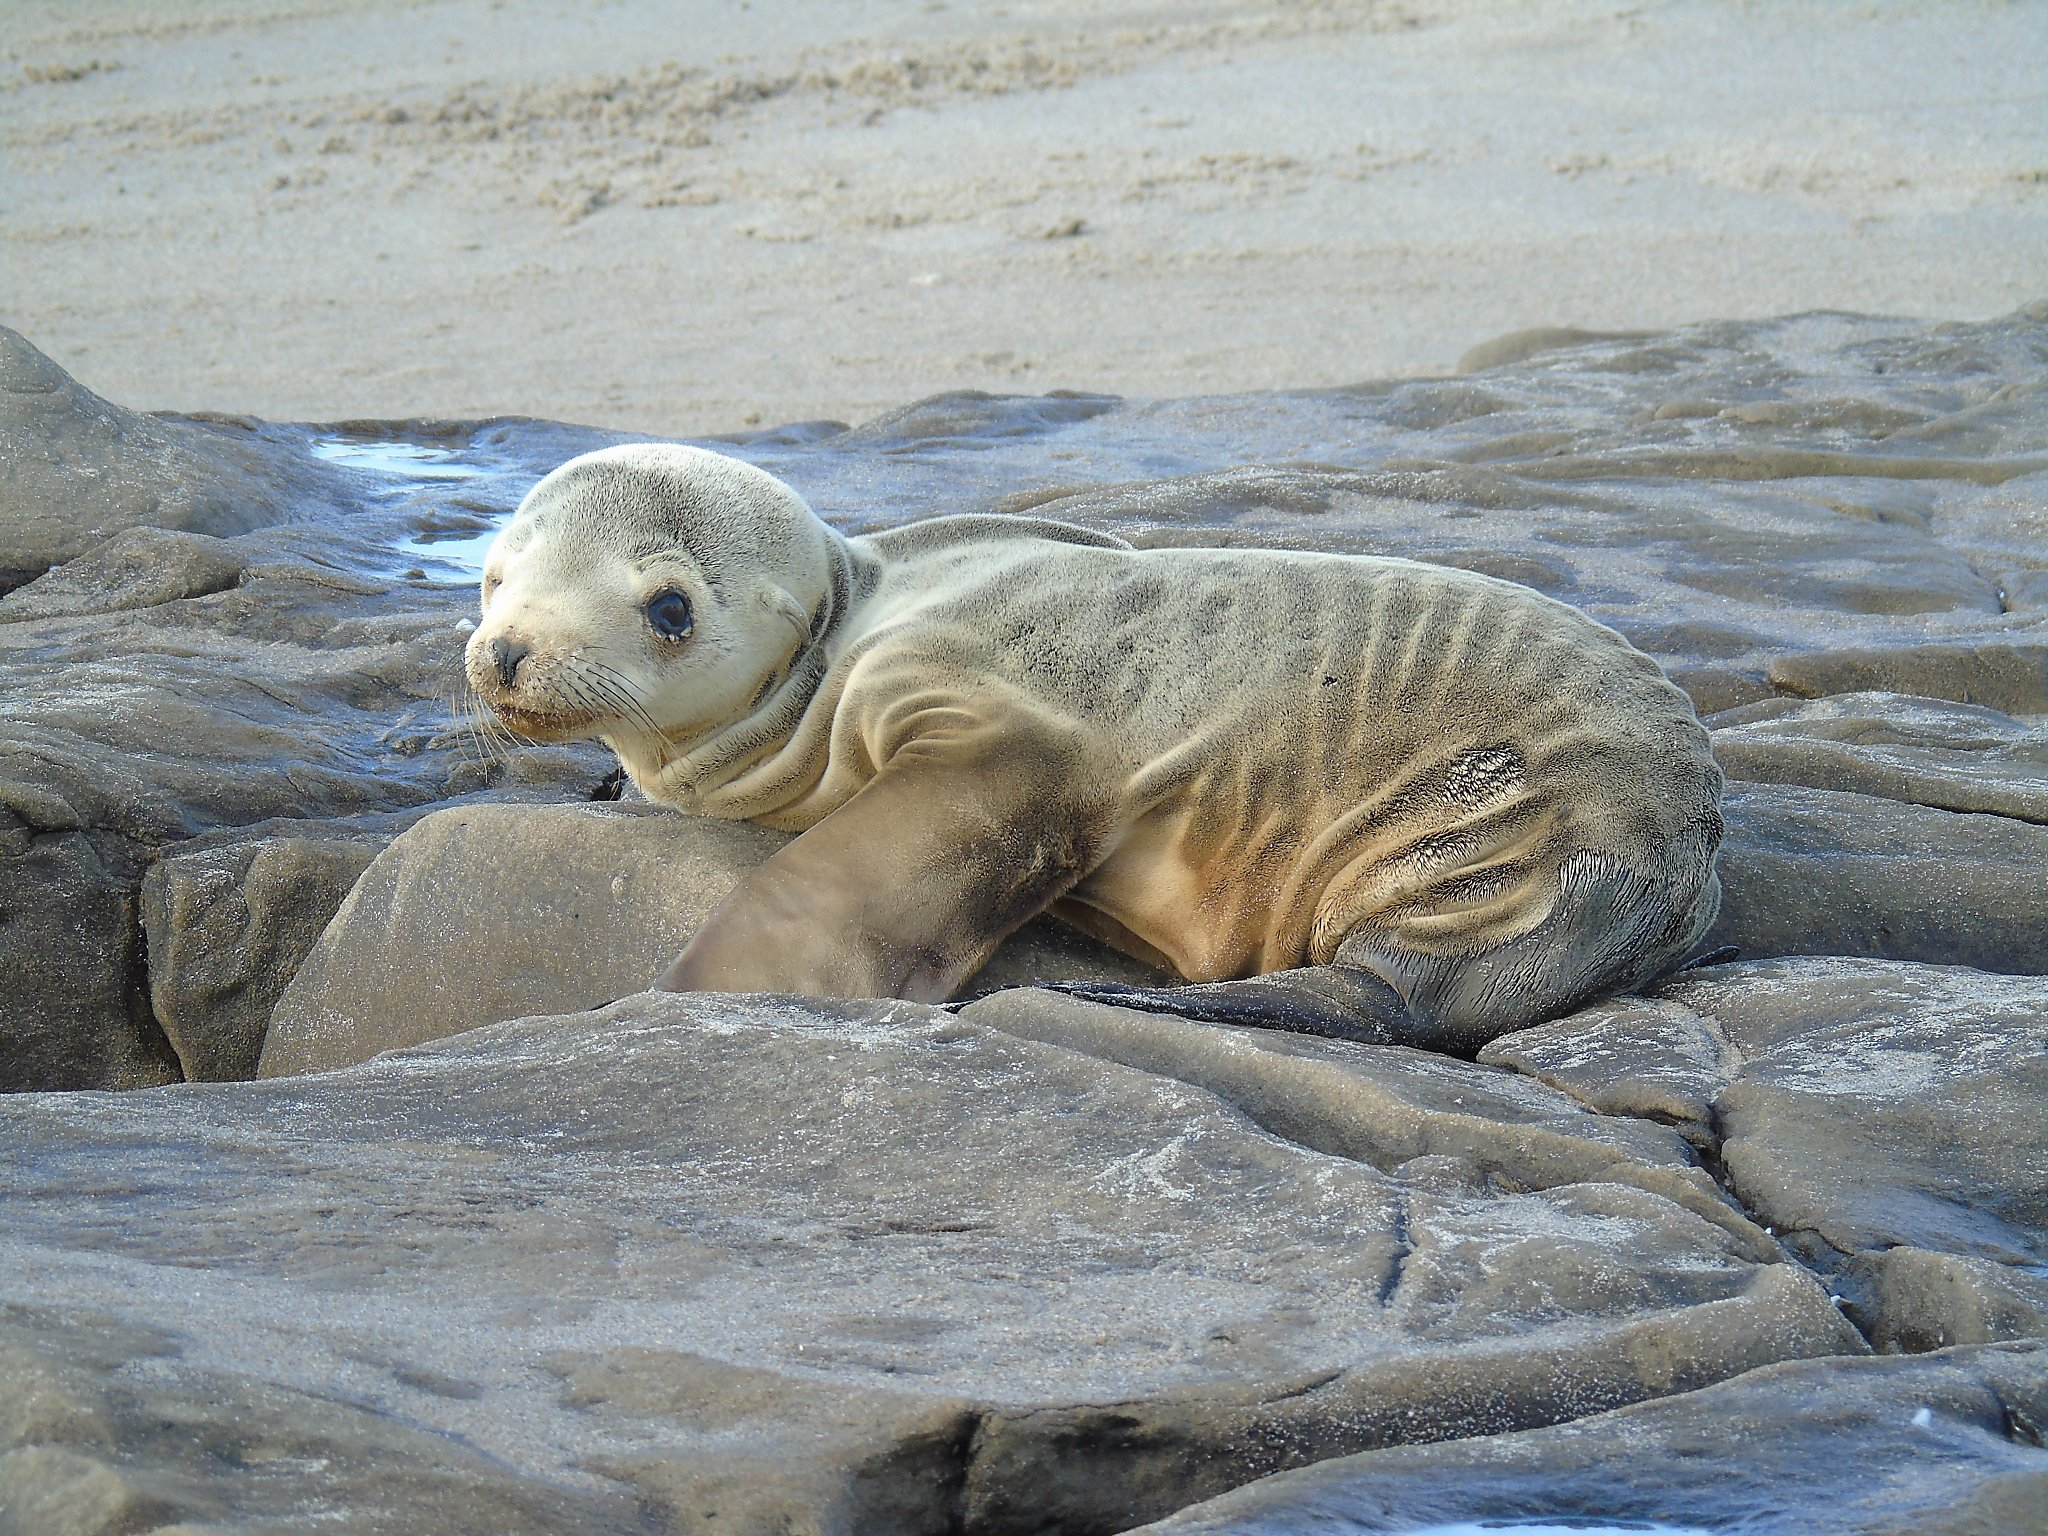 Hungry fur seal killed and ate five sharks